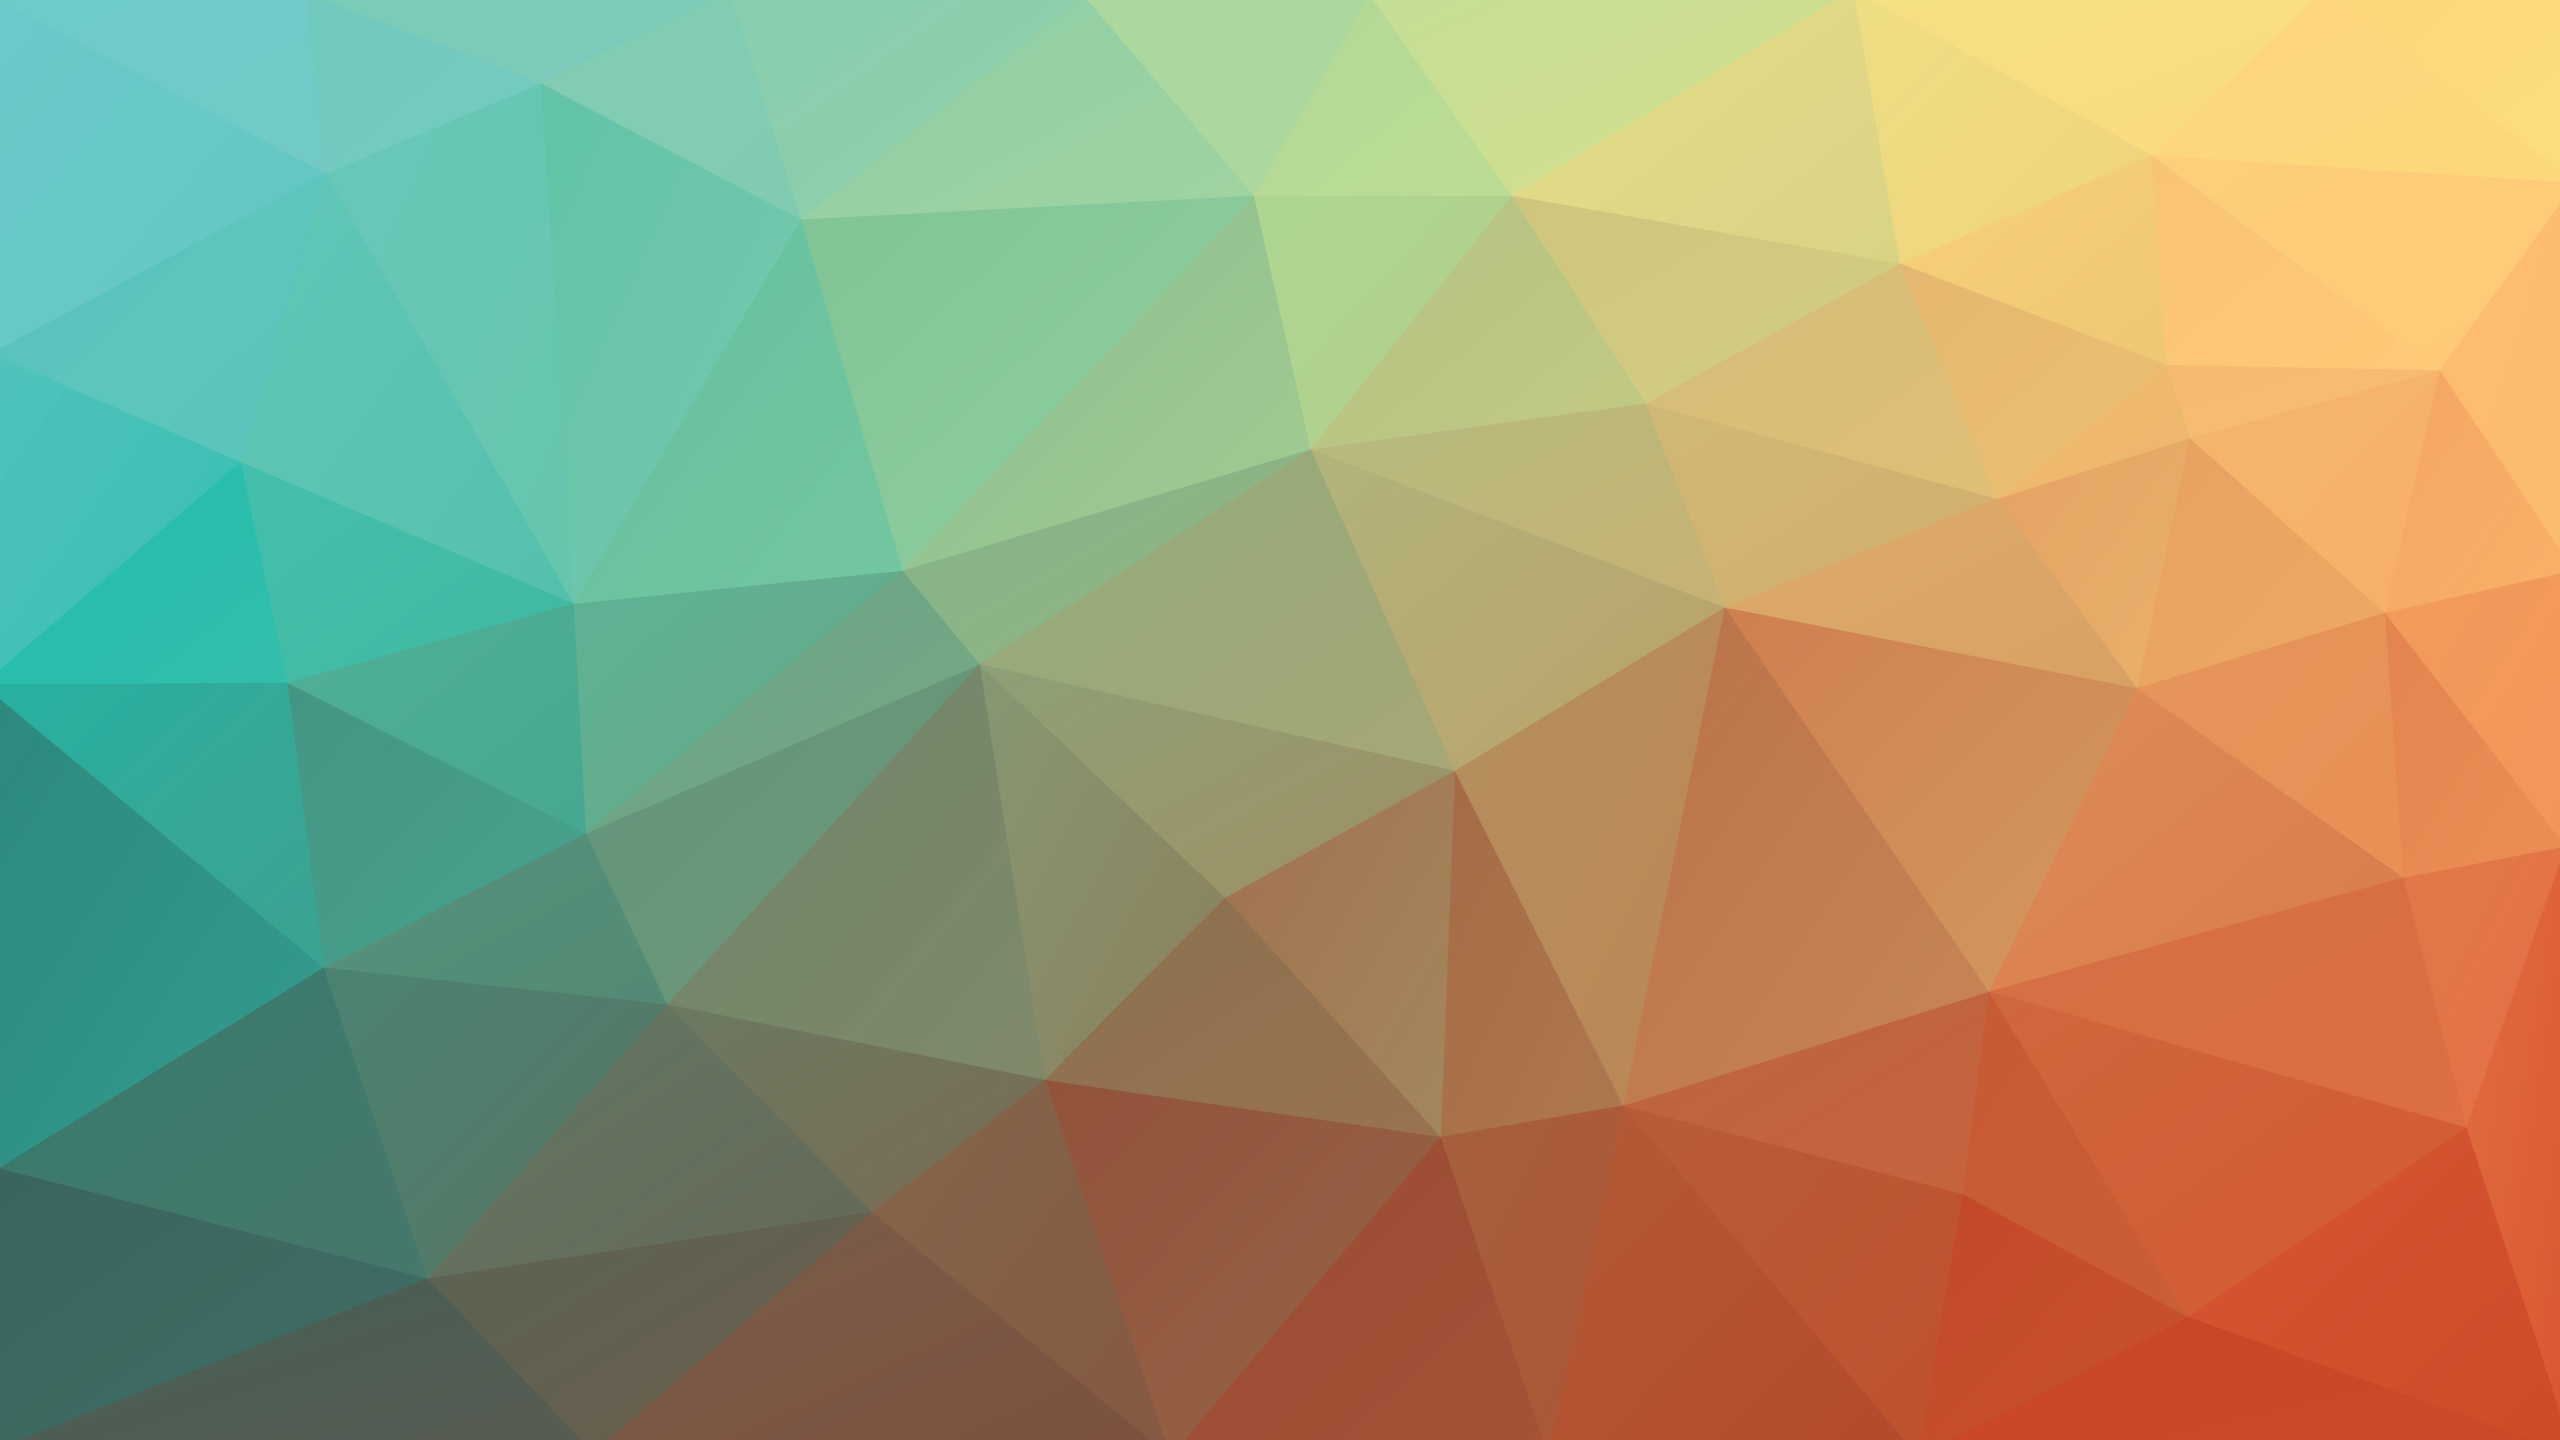 color19 Tessellation patterns, Background hd wallpaper